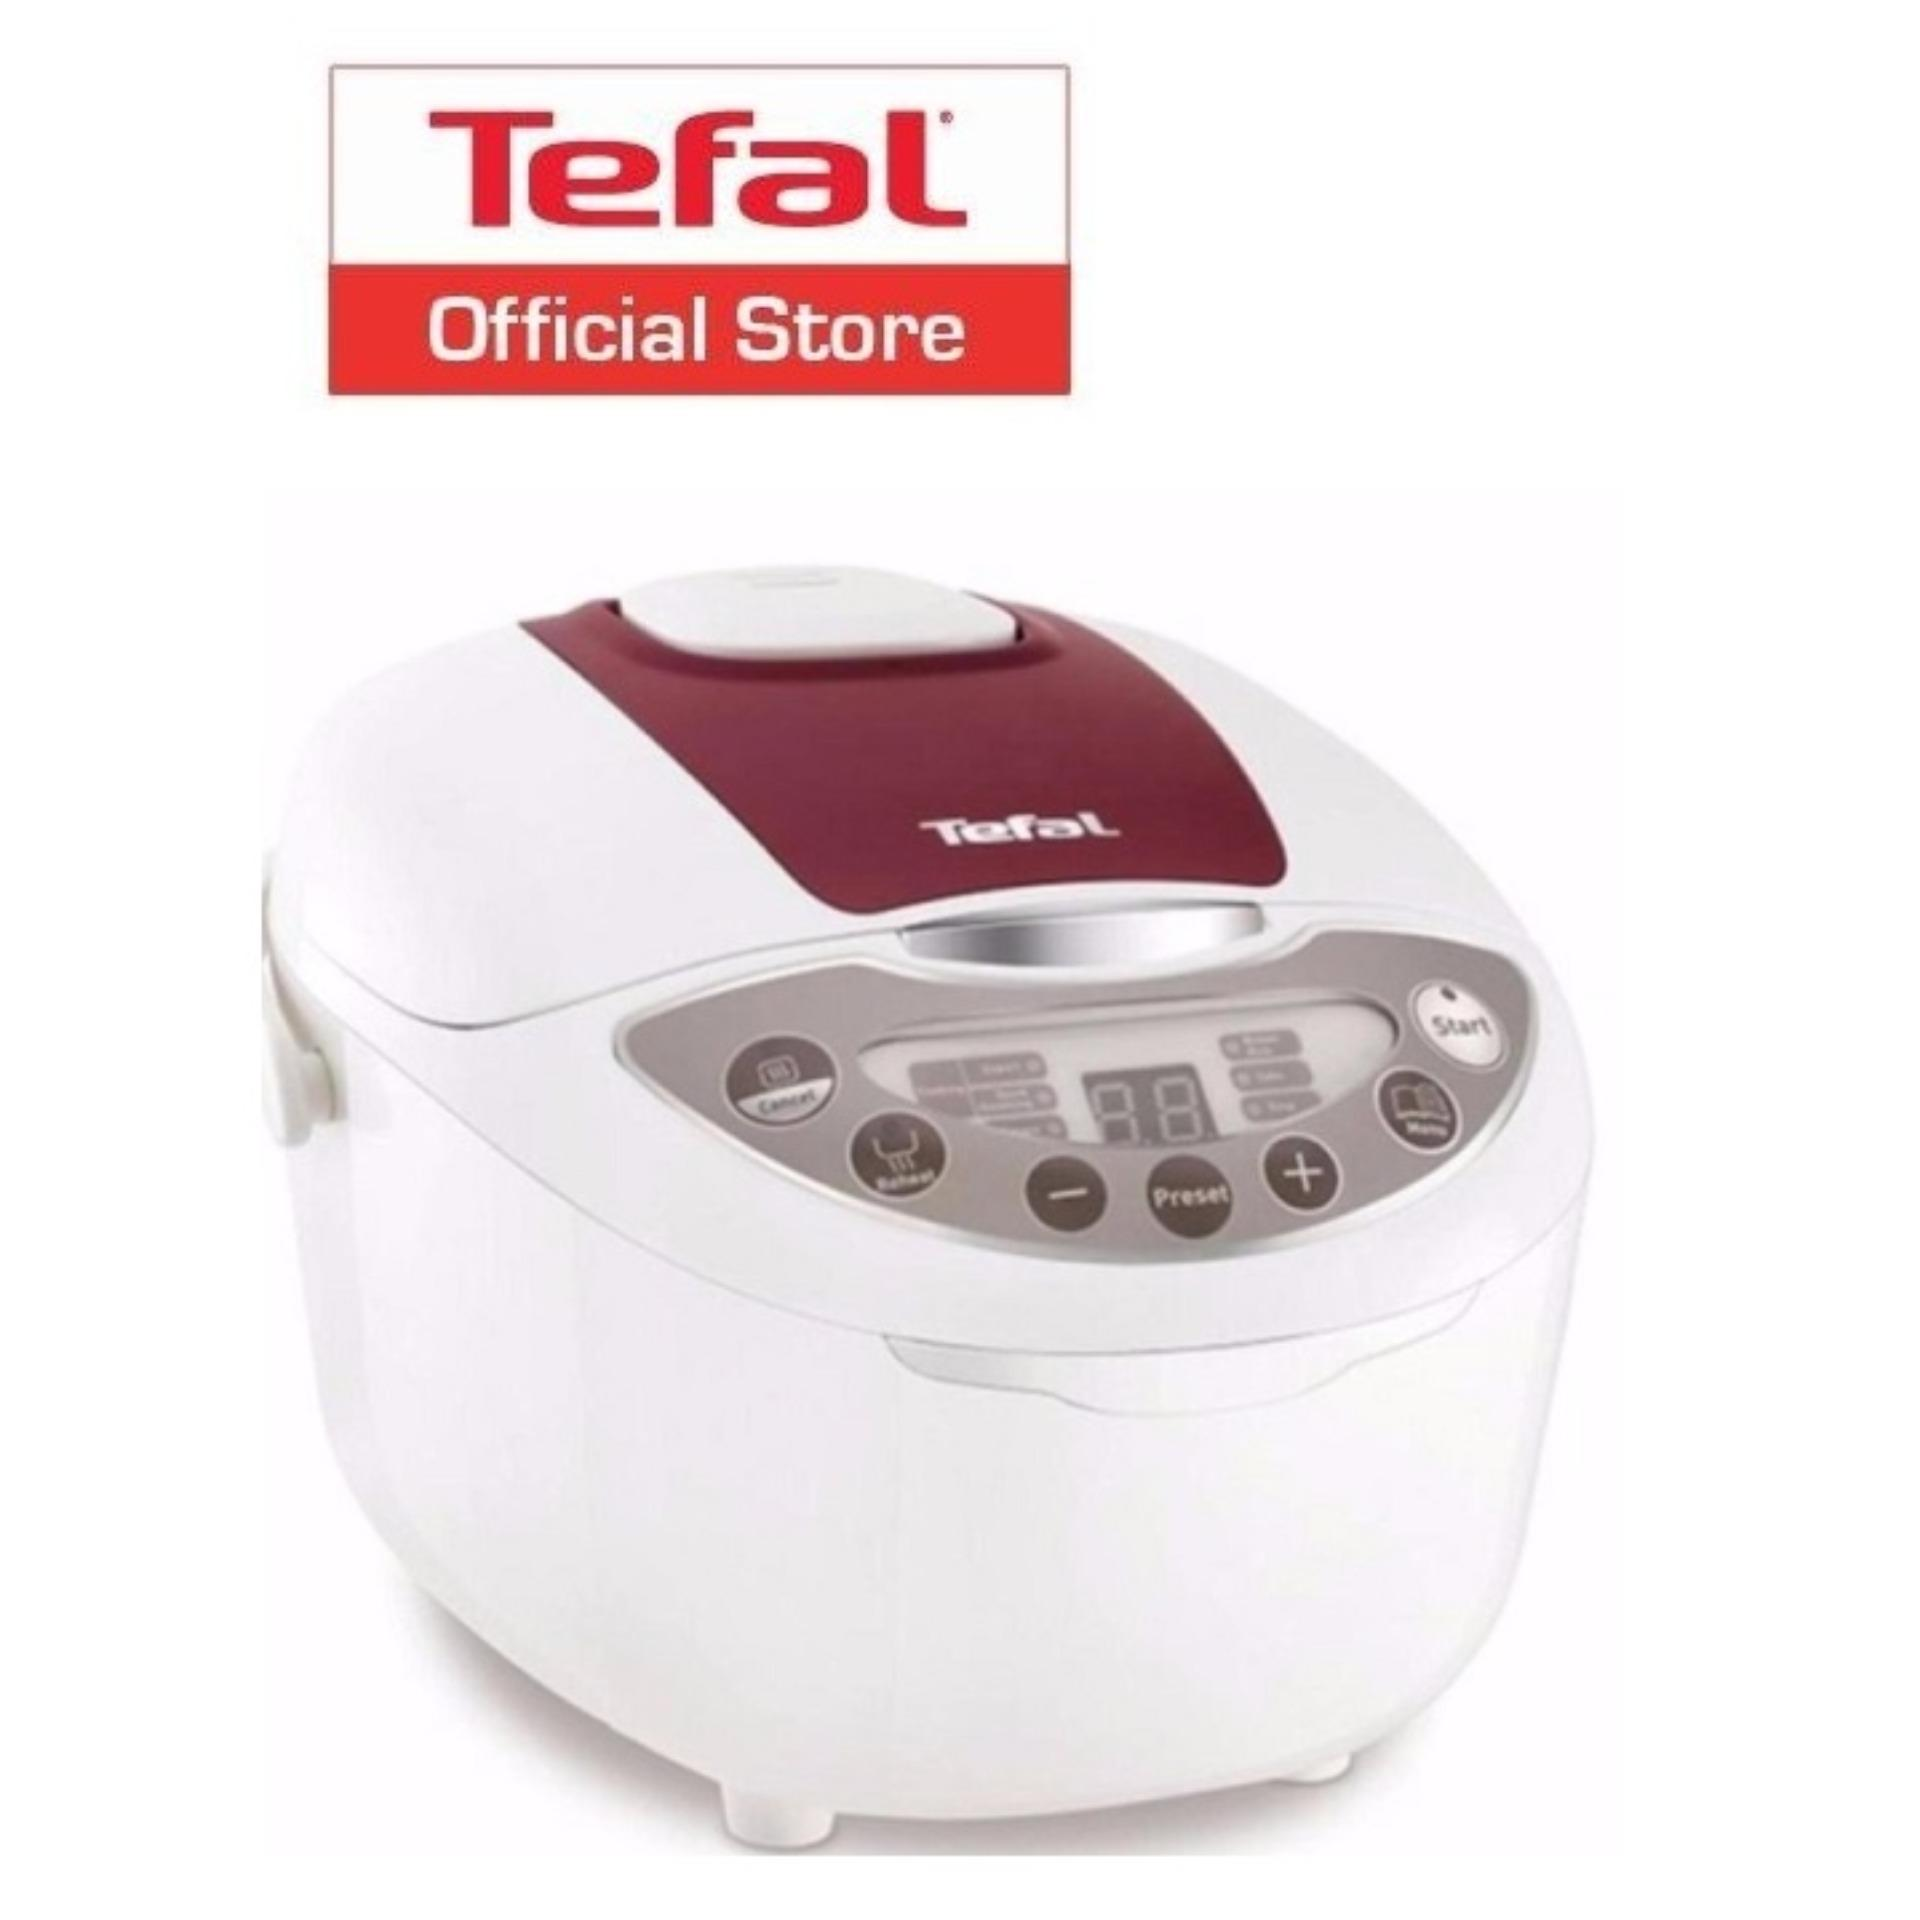 Where To Buy Tefal 6 Program Fuzzy Logic Rice Cooker 1L Rk7025